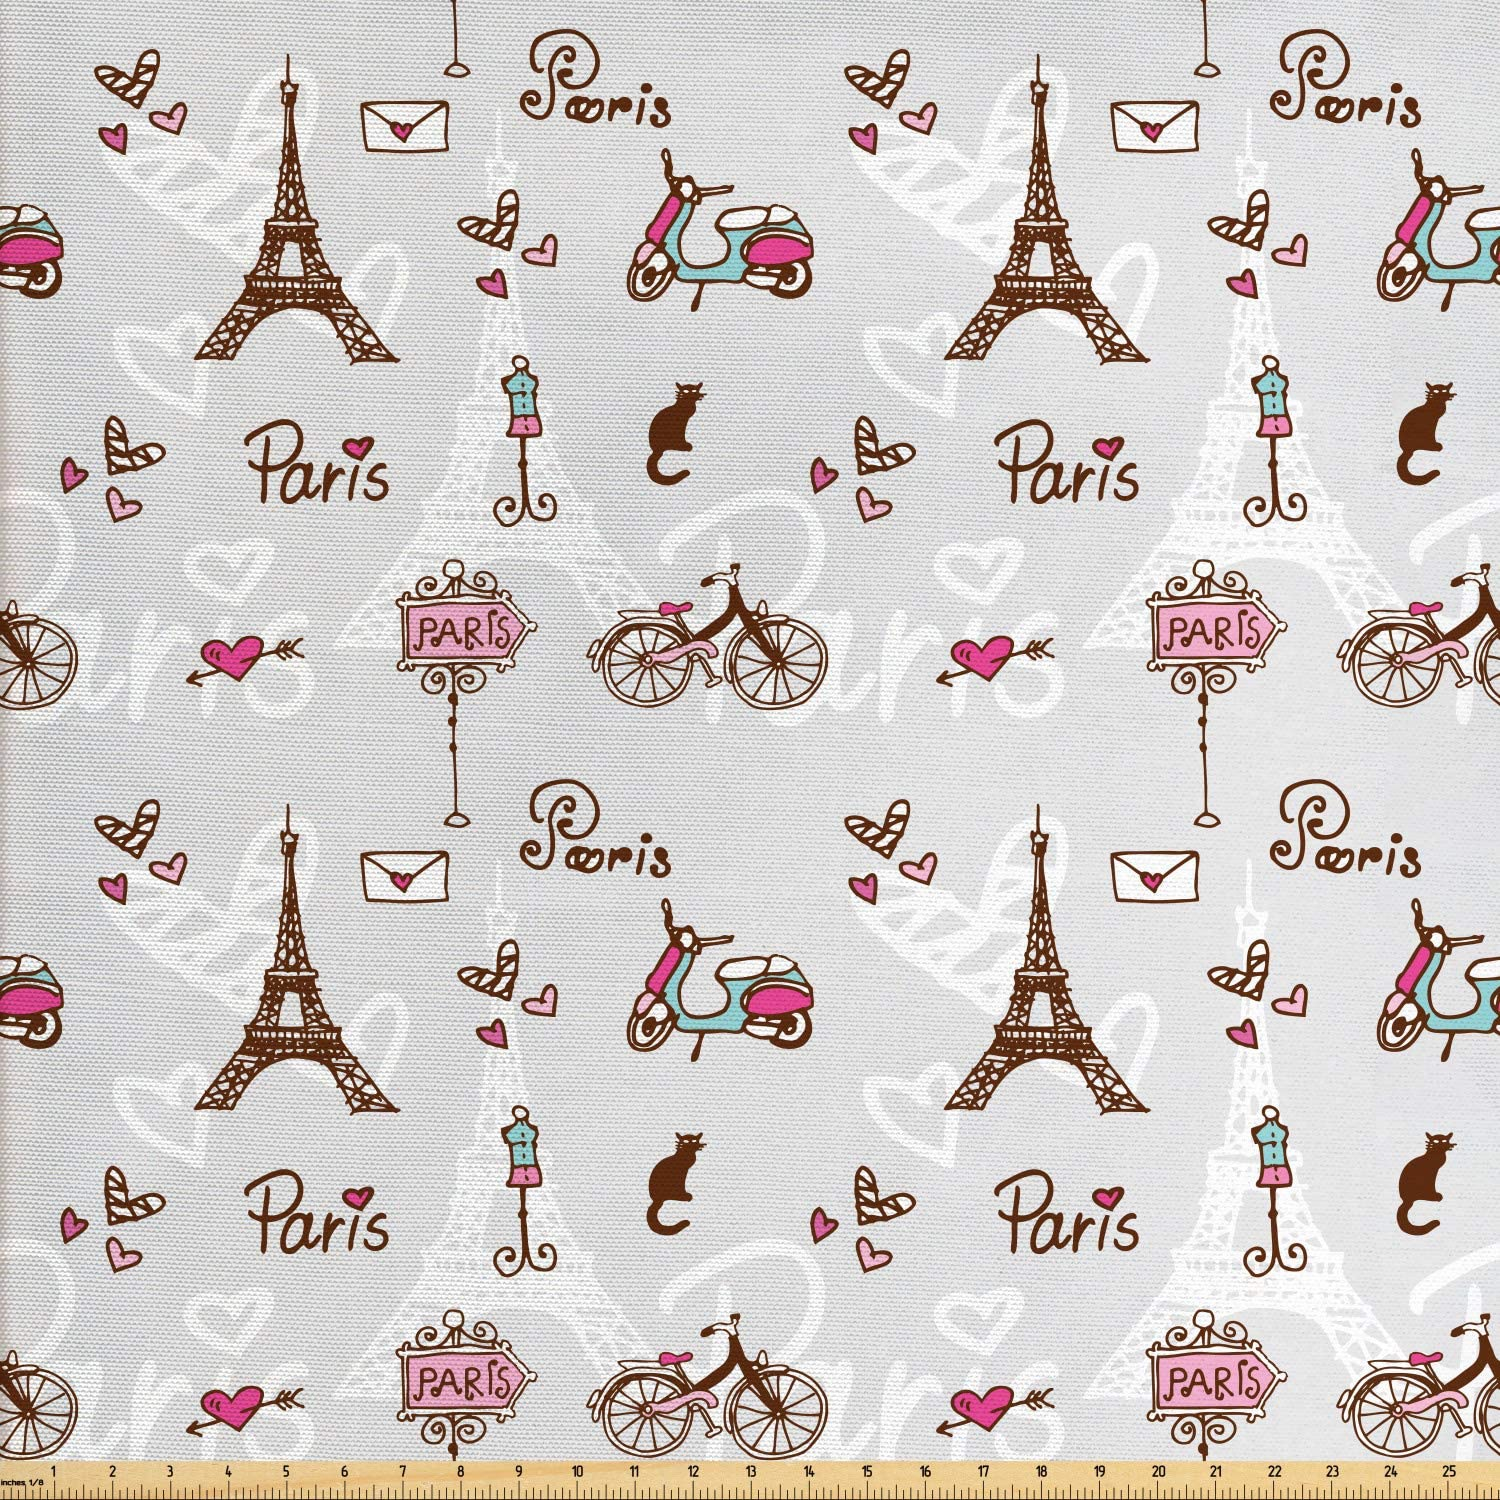 Ambesonne Paris Fabric by The Yard, Romance Language Capital of Love Eiffel Heart Fashion City Girlish Print, Decorative Fabric for Upholstery and Home Accents, 3 Yards, Redwood Pearl